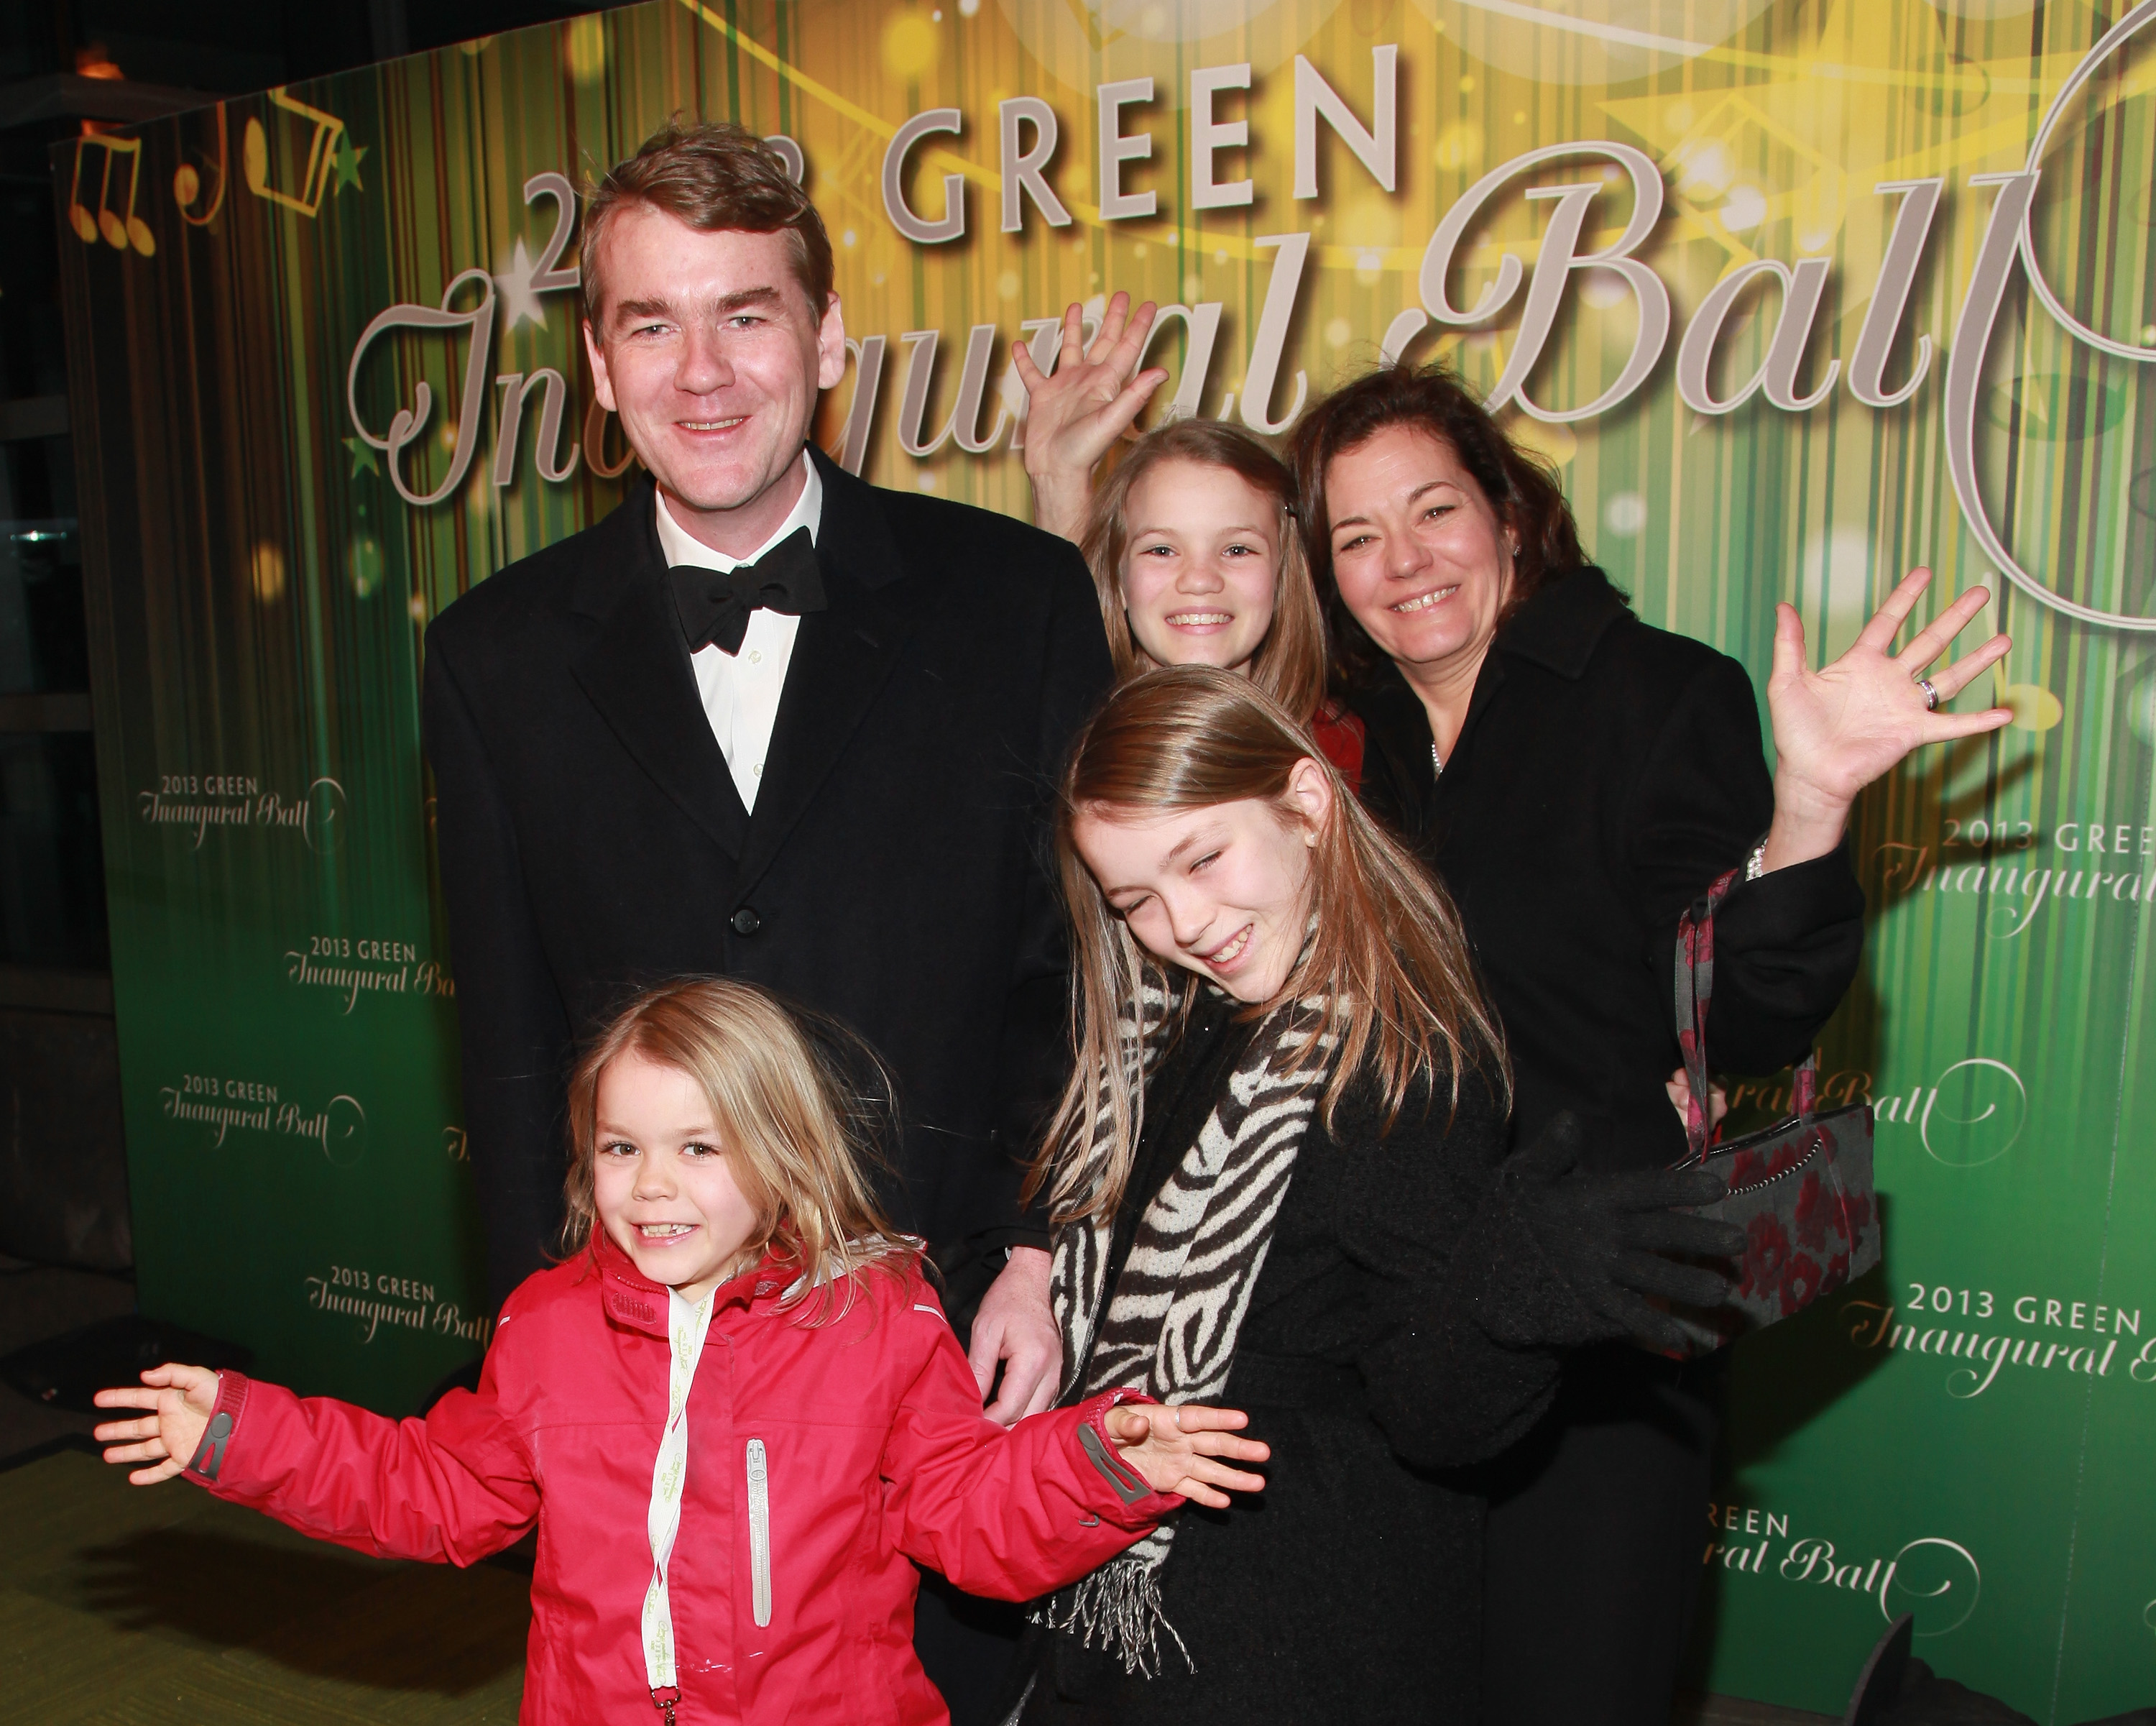 Michael Bennet and Susan Daggetts family